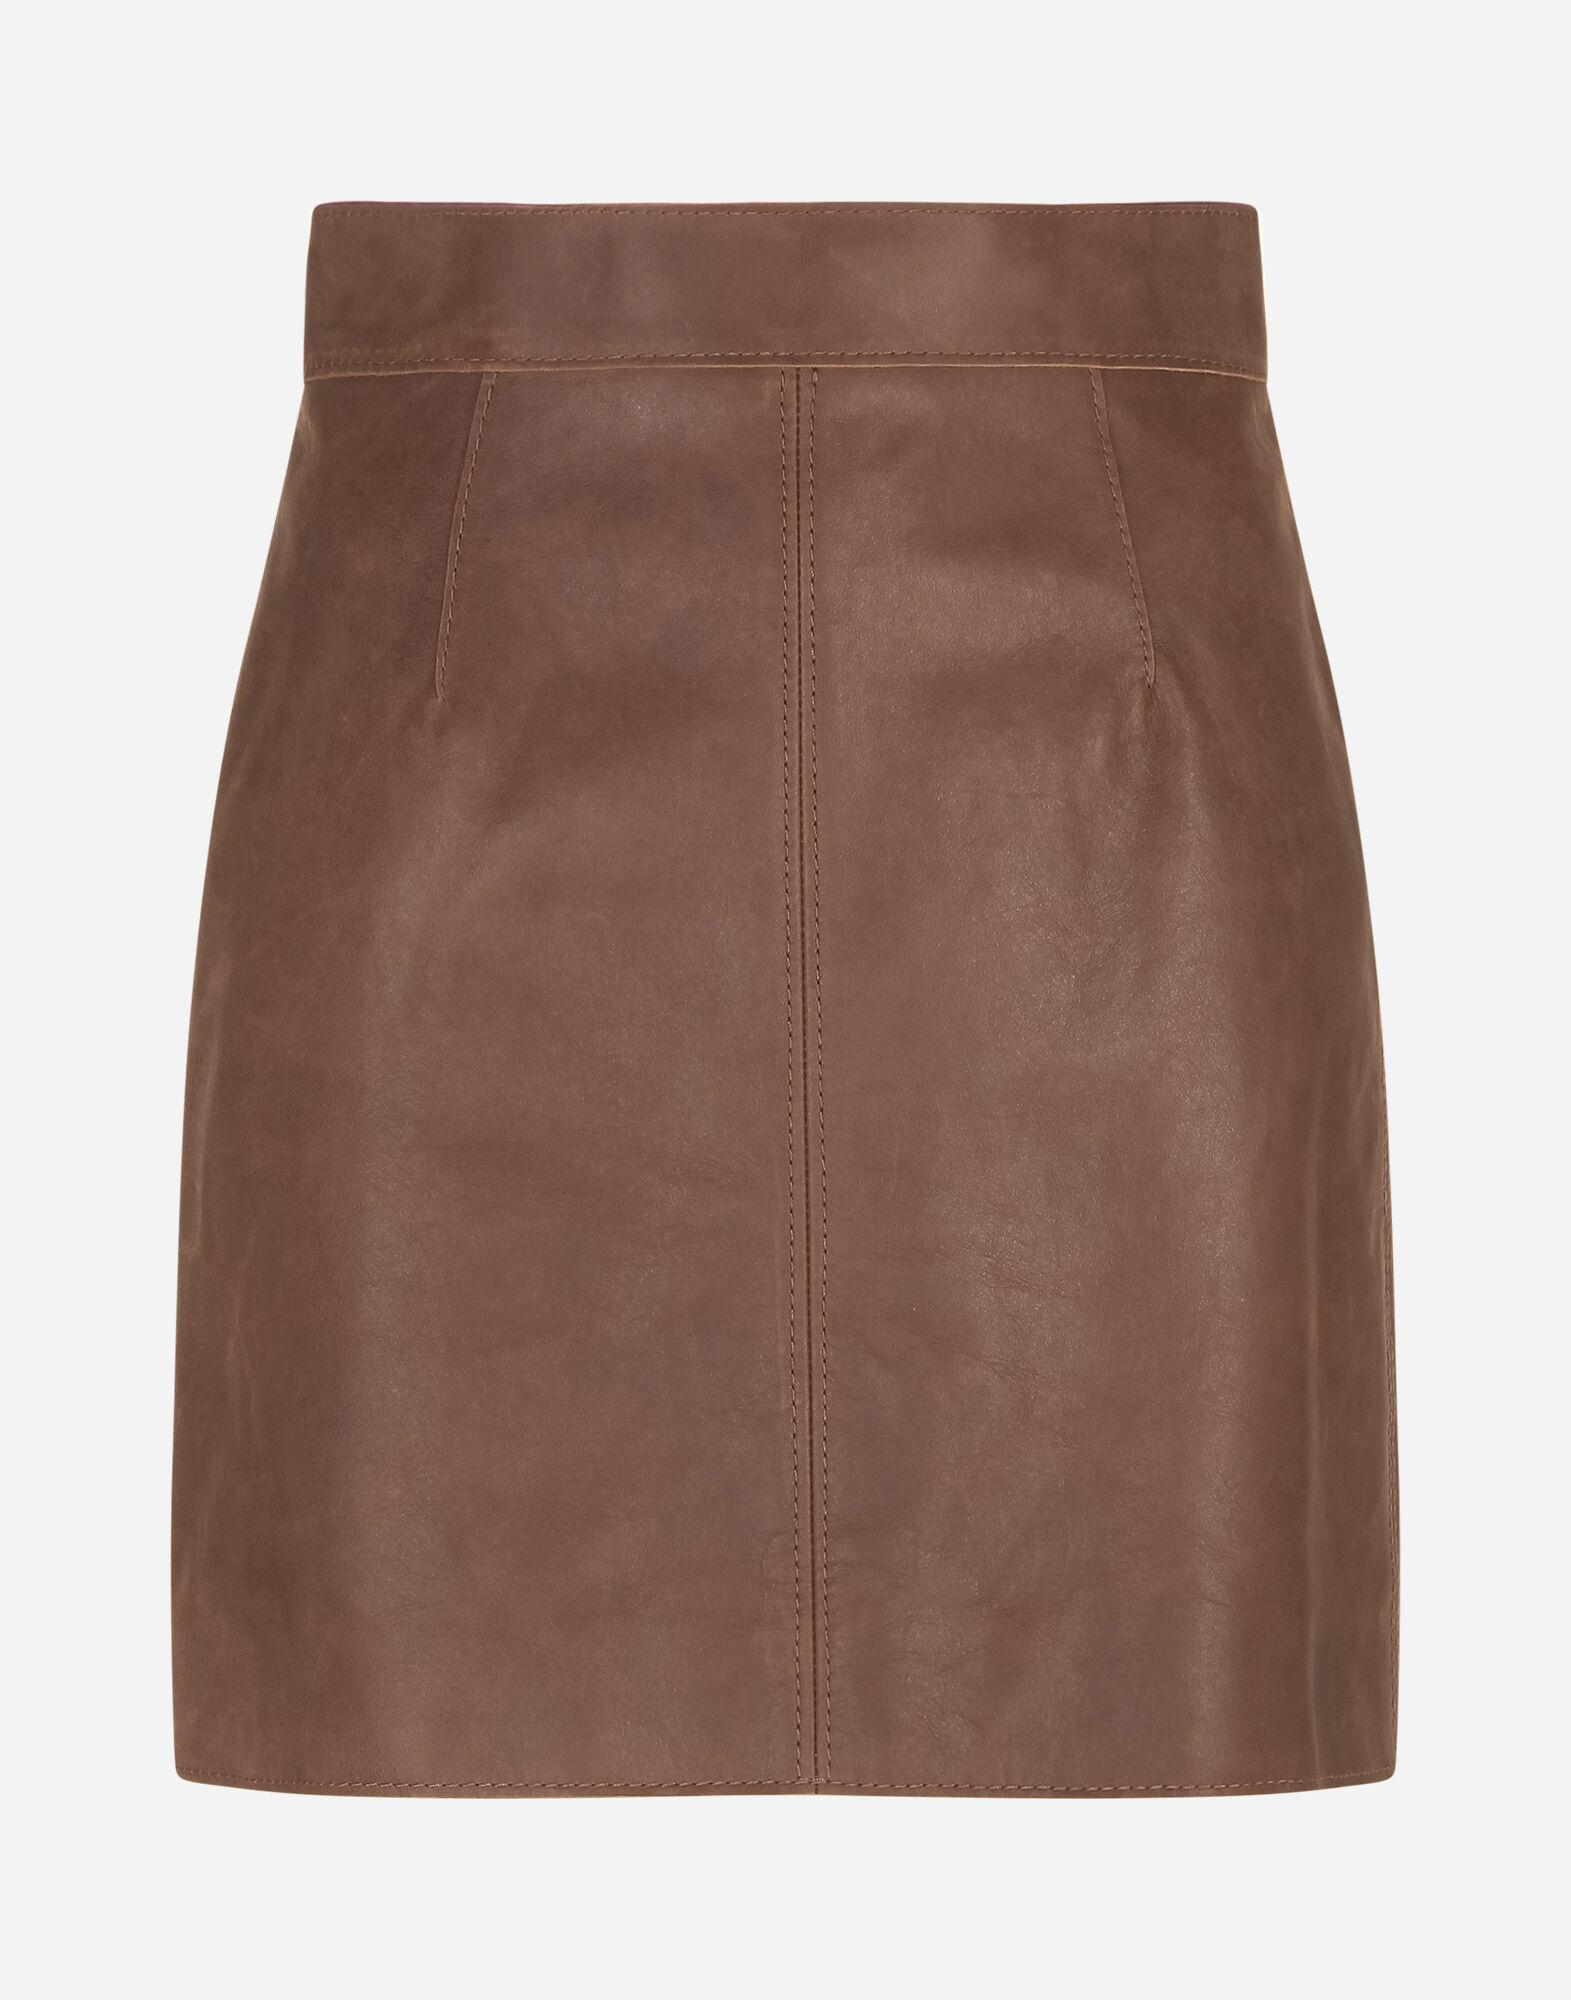 A-line miniskirt in hammered nappa leather 4